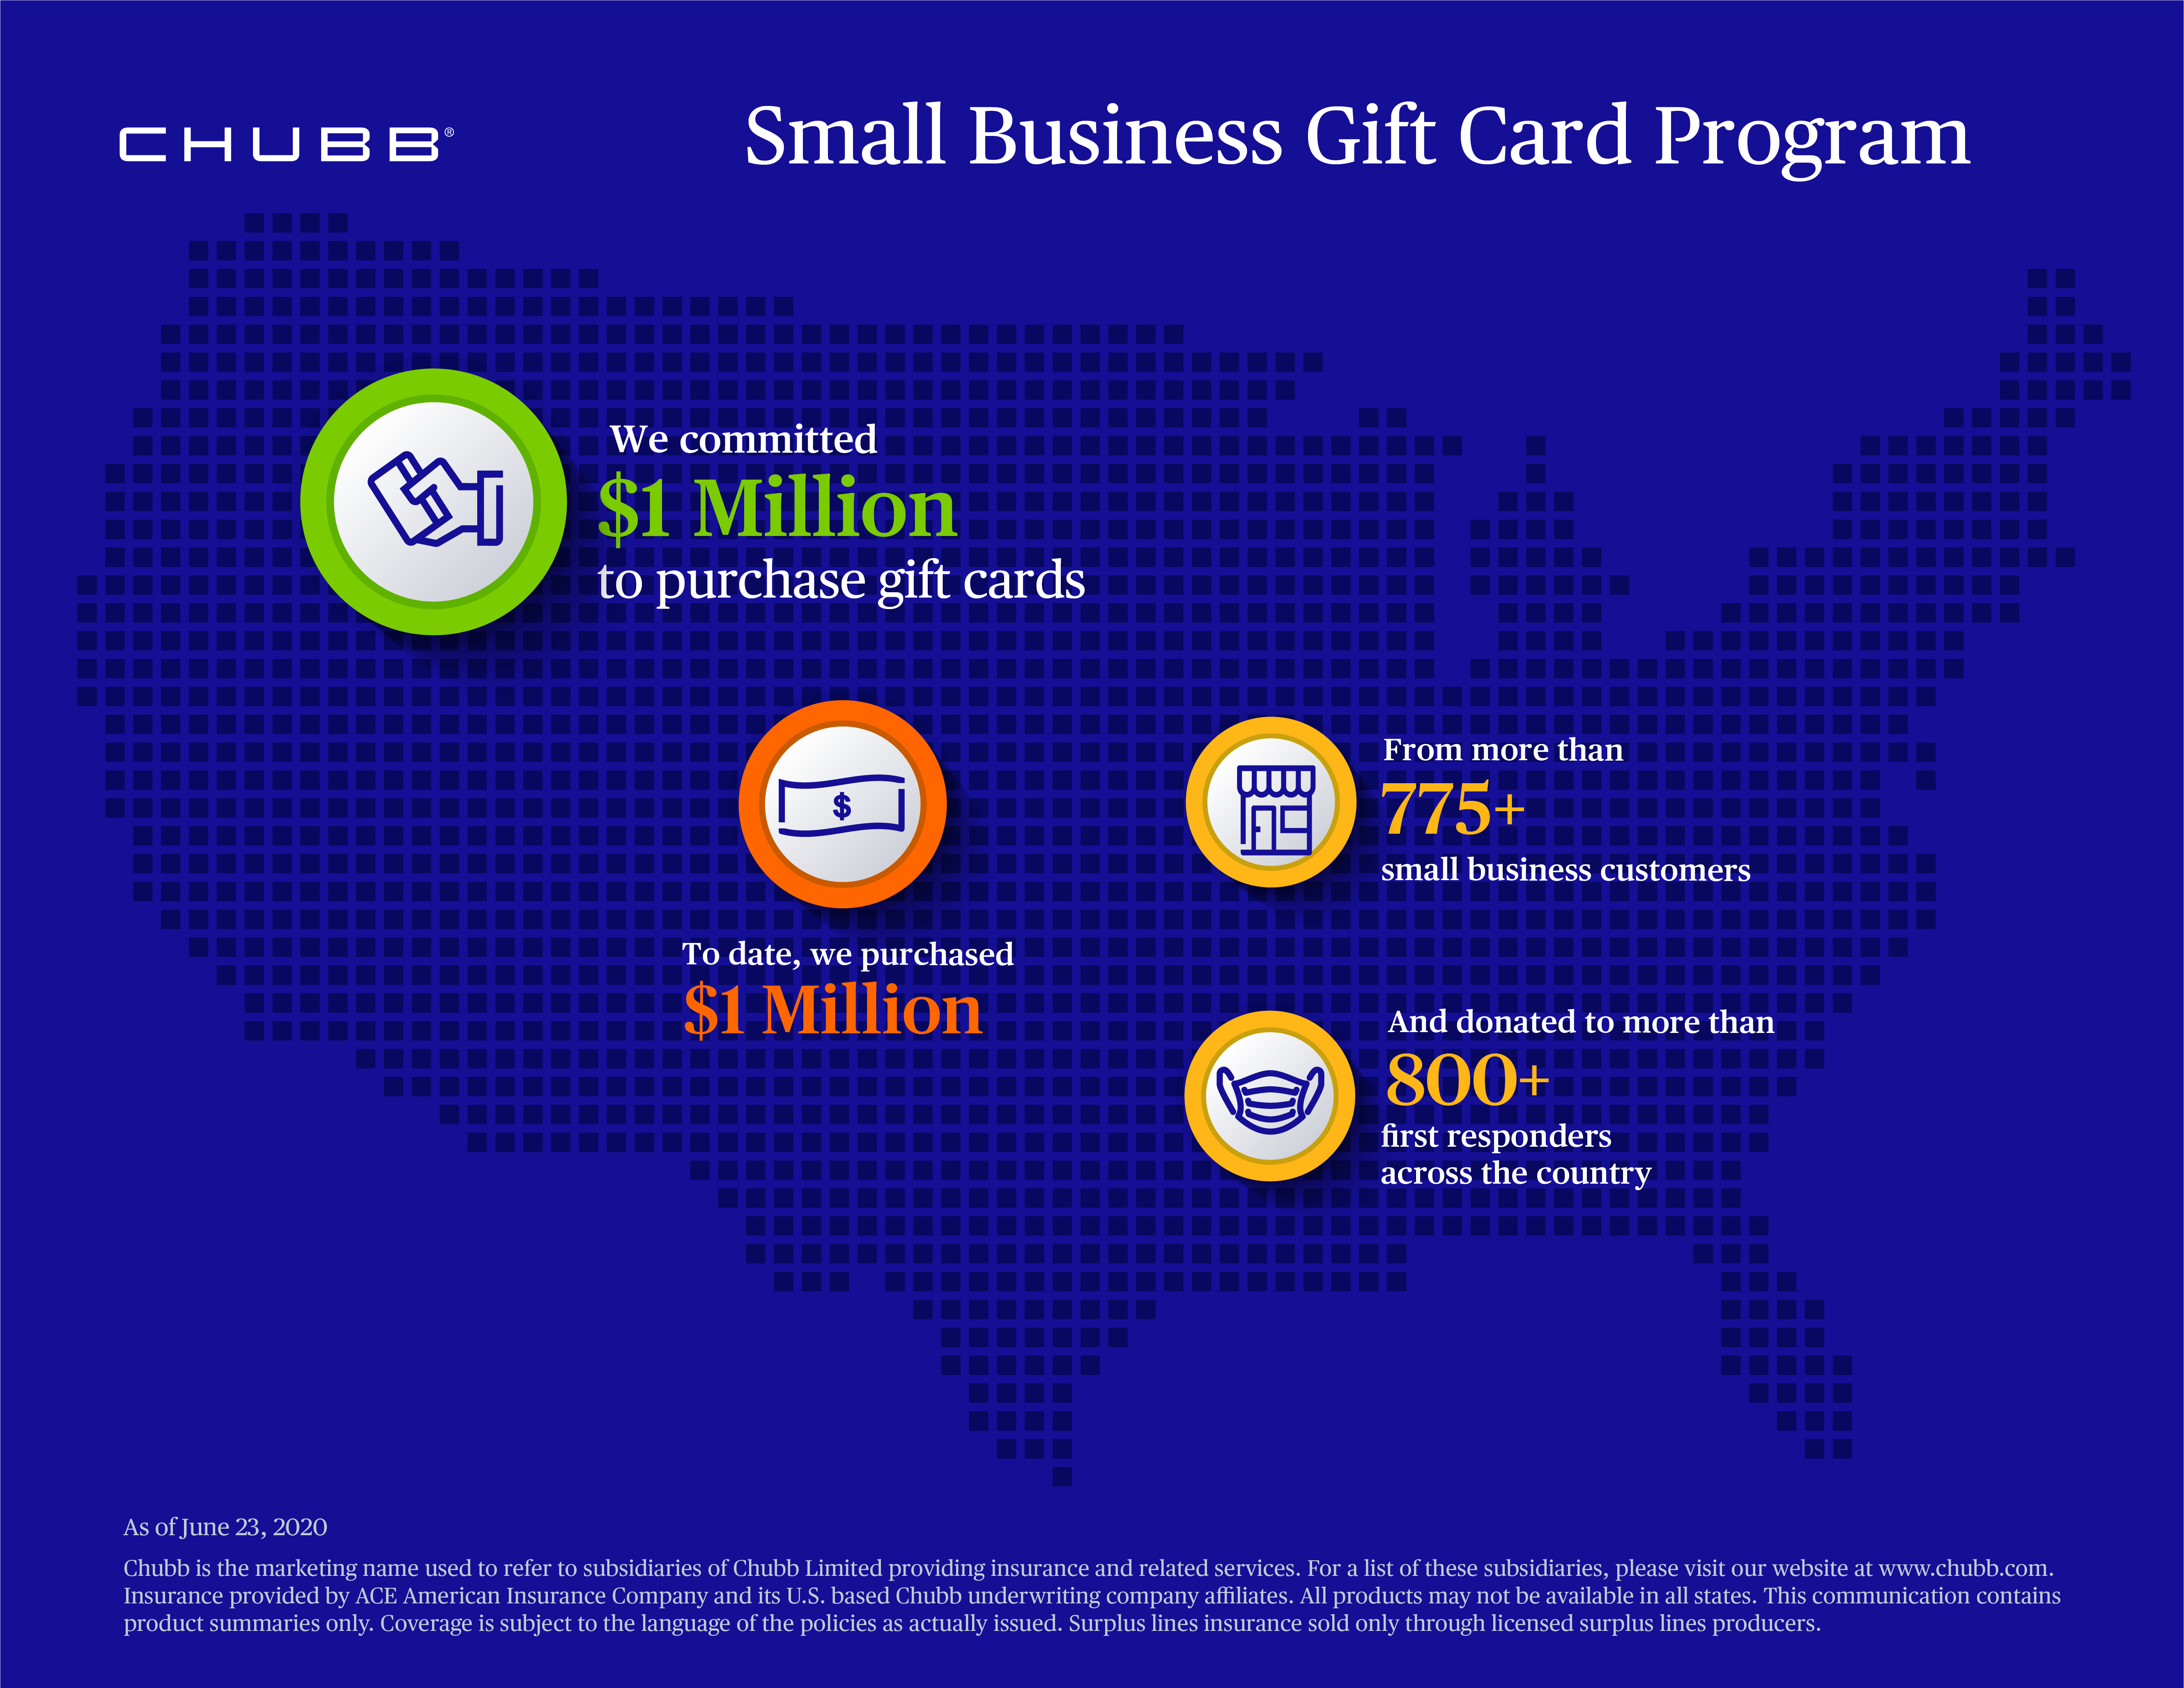 Infographic: We have committed $1 Million to purchase gift cards. To date, we purchased $900,000+ from more than 750+ small business customers, and donated to more than 300+ first responders across the country.